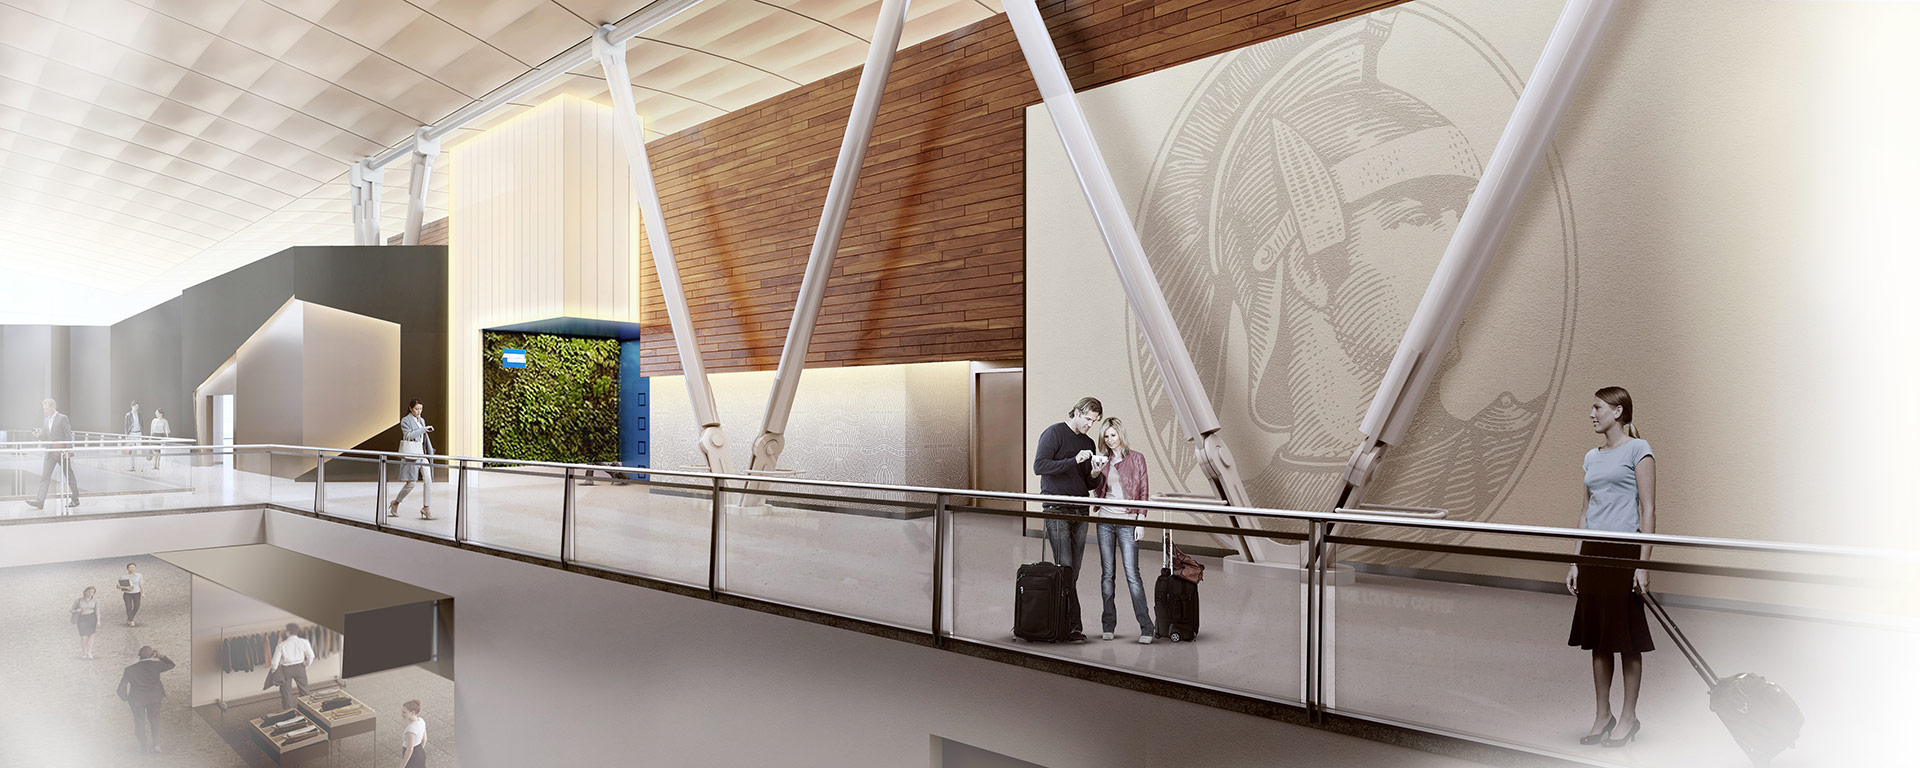 The Centurion Lounge - Rendering (JFK)